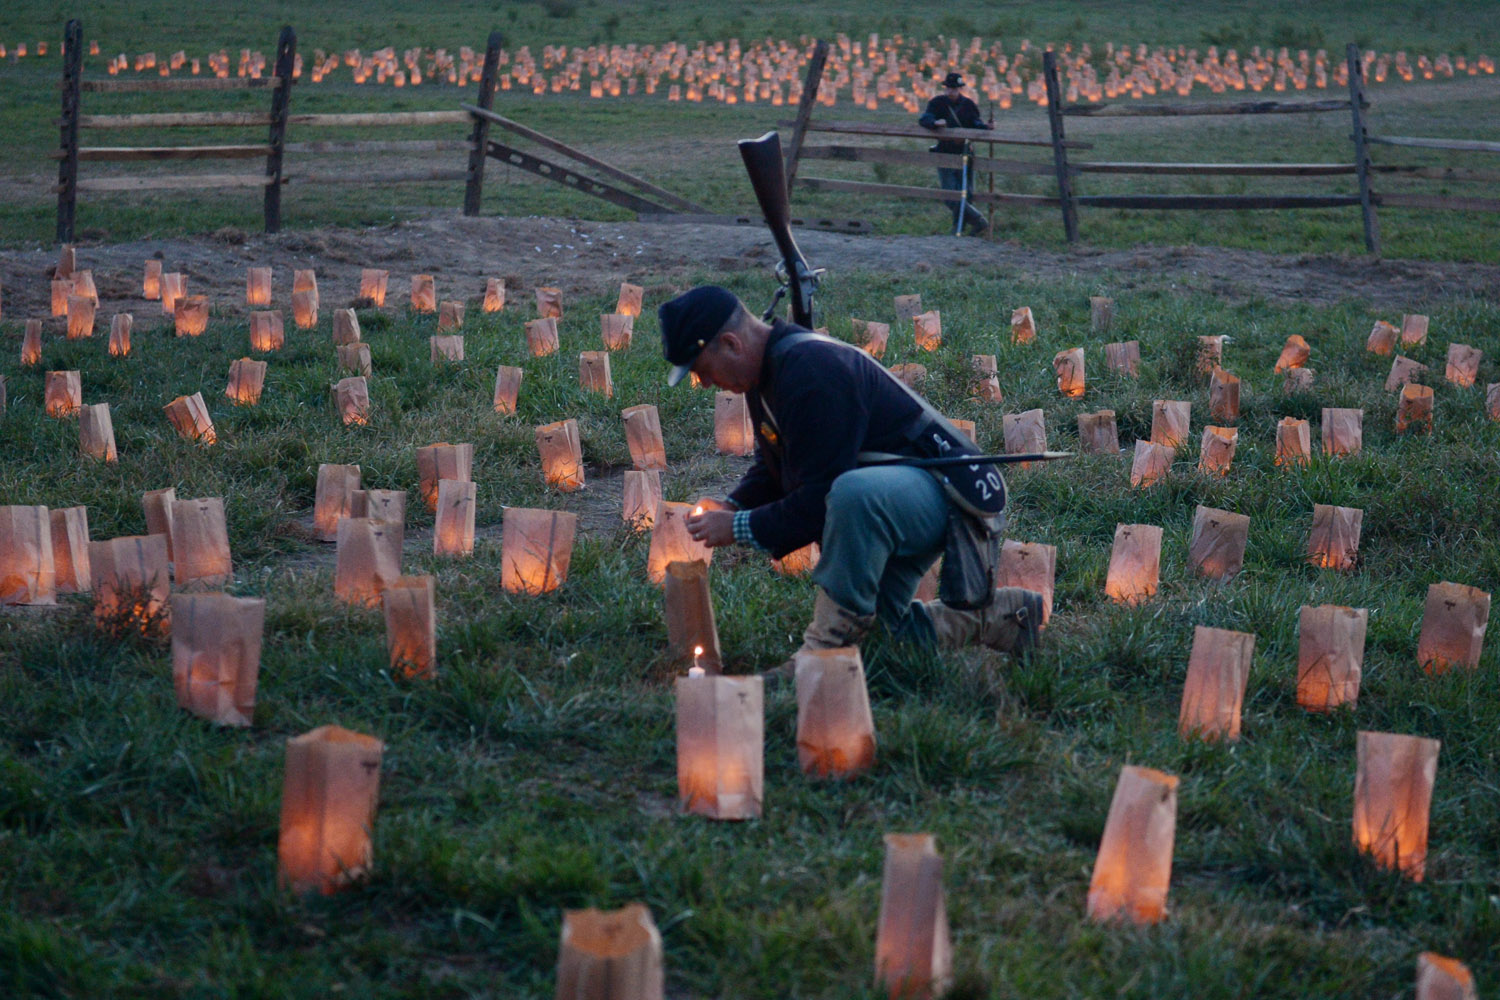 Sept. 15, 2012. A reenactor portraying a Union soldier helps to light more then 3,600 candles to commemorate the deaths of Antietam, during the 150th Anniversary Reenactment of the Civil War battle, at Legacy Manor Farm in Boonsboro, Md.